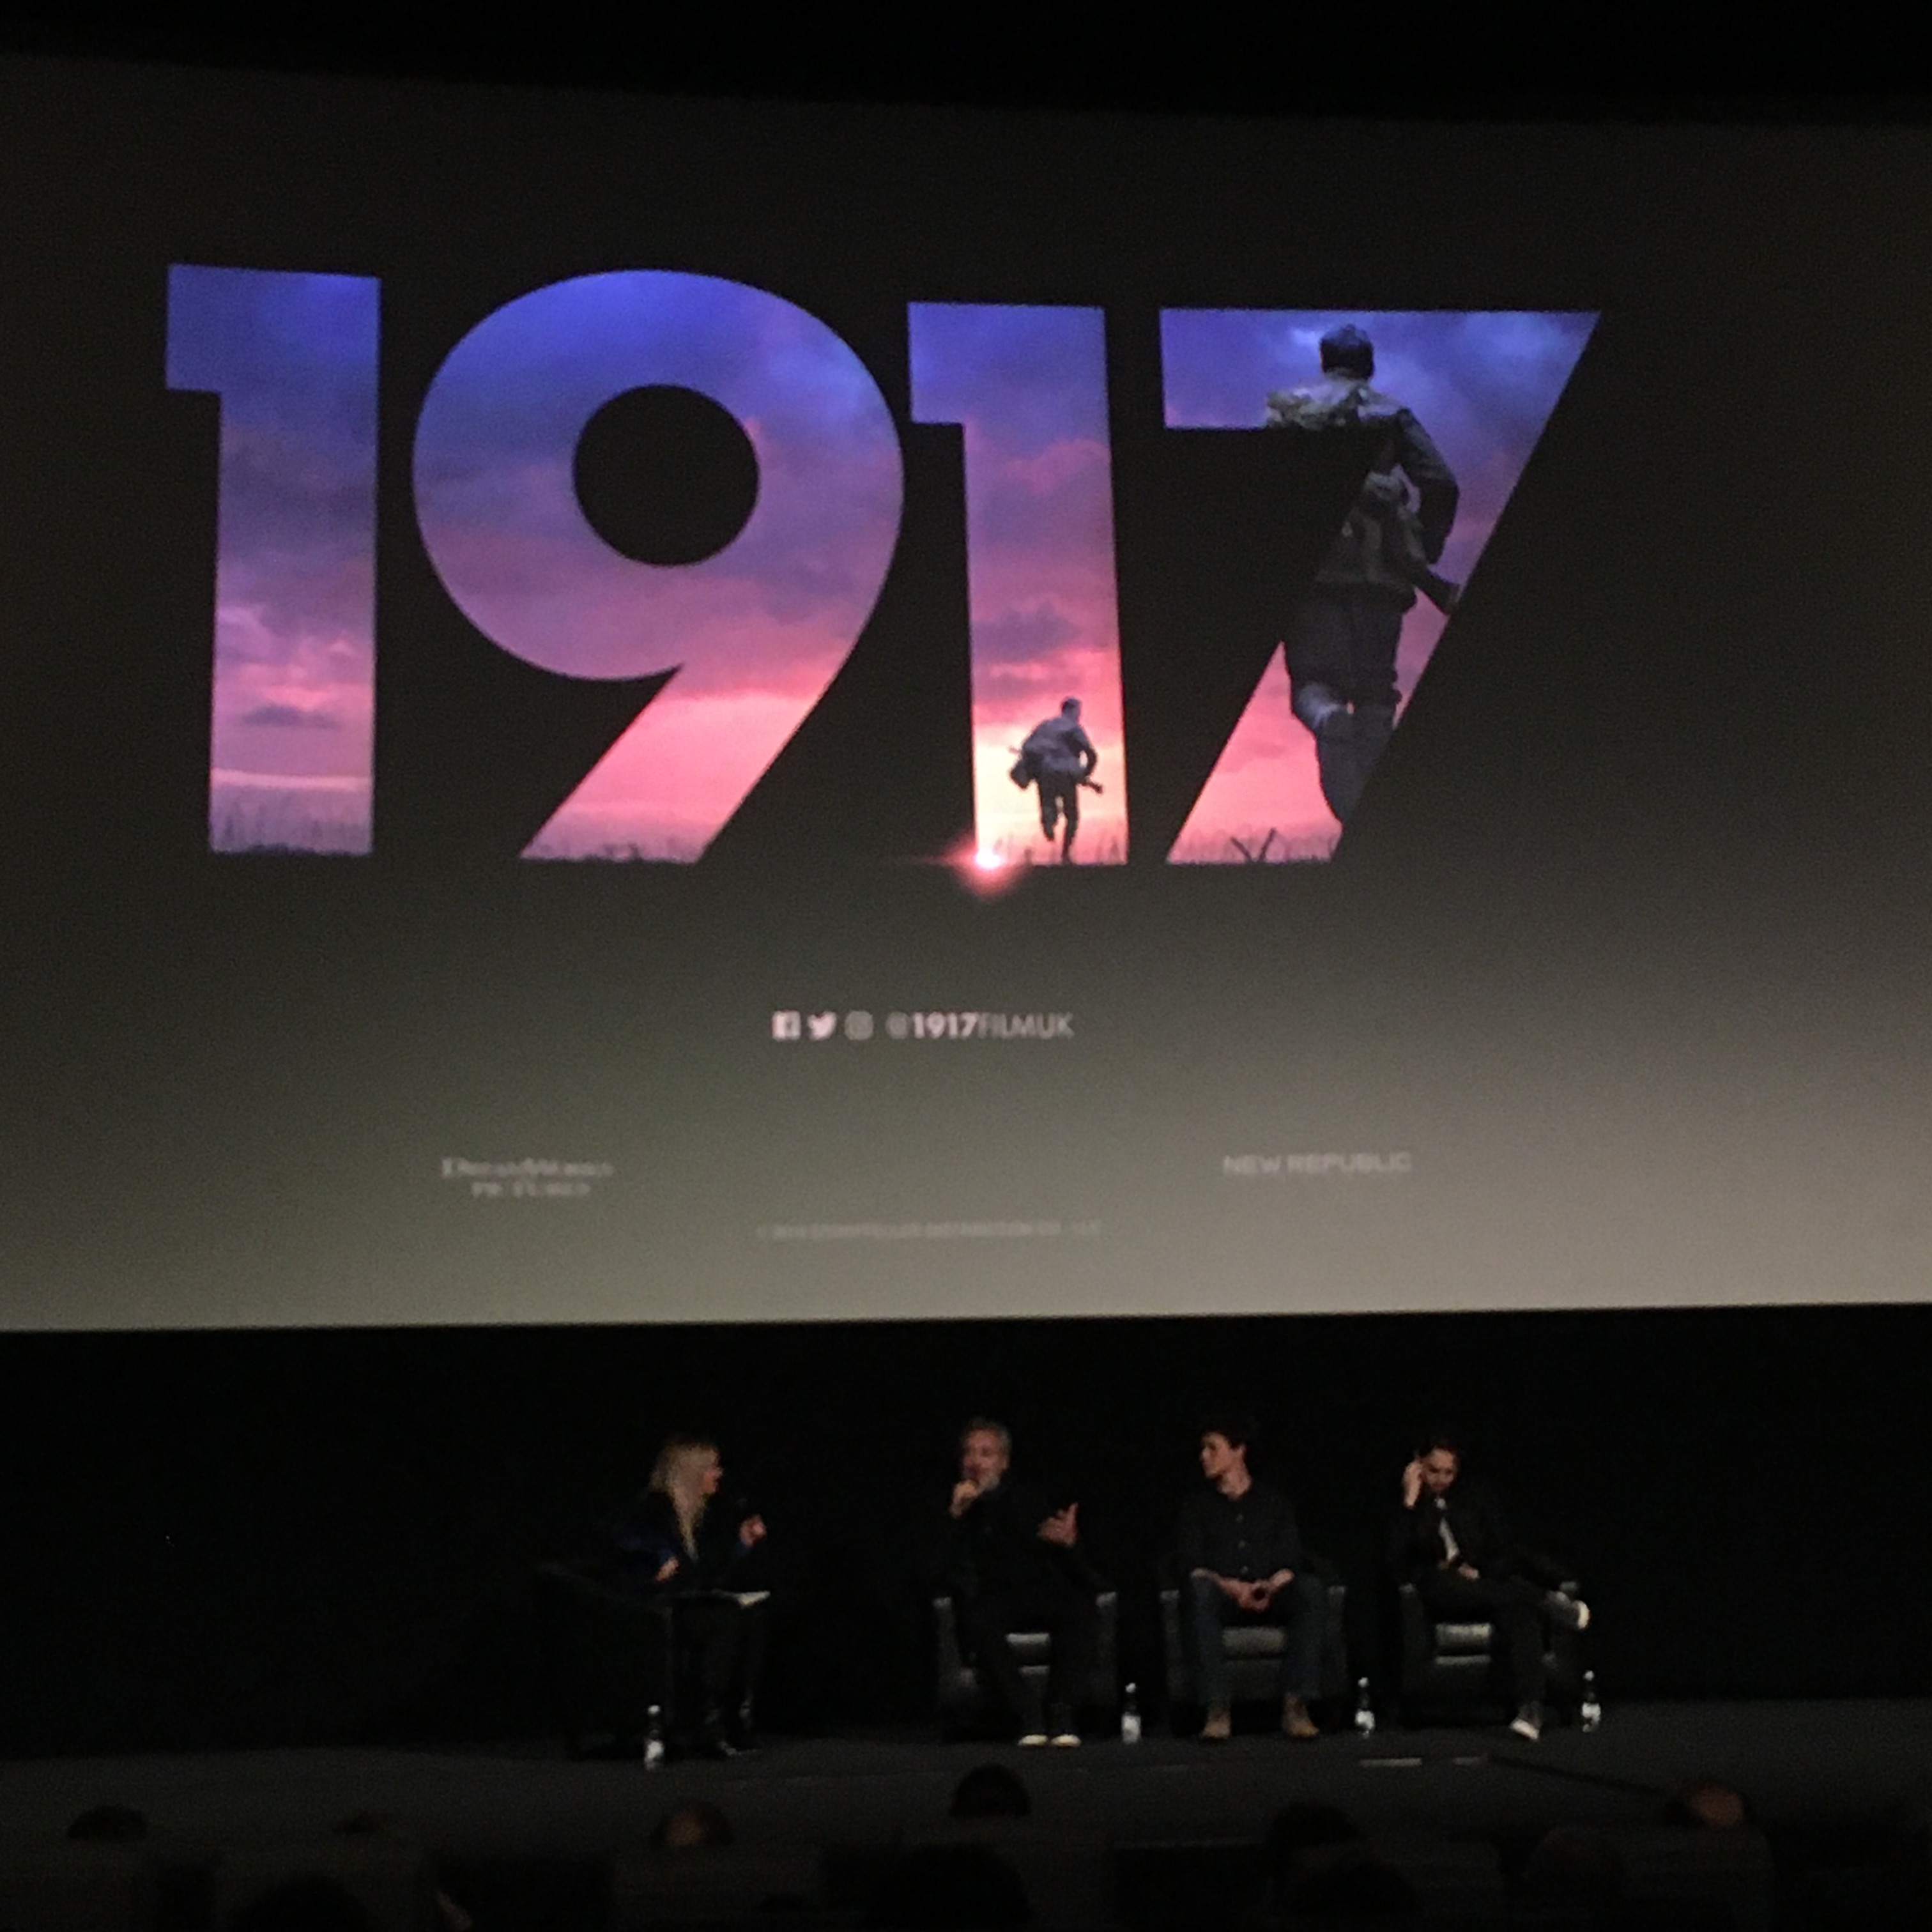 screening of 1917 at the Odeon Leicester Square 9 january 2020